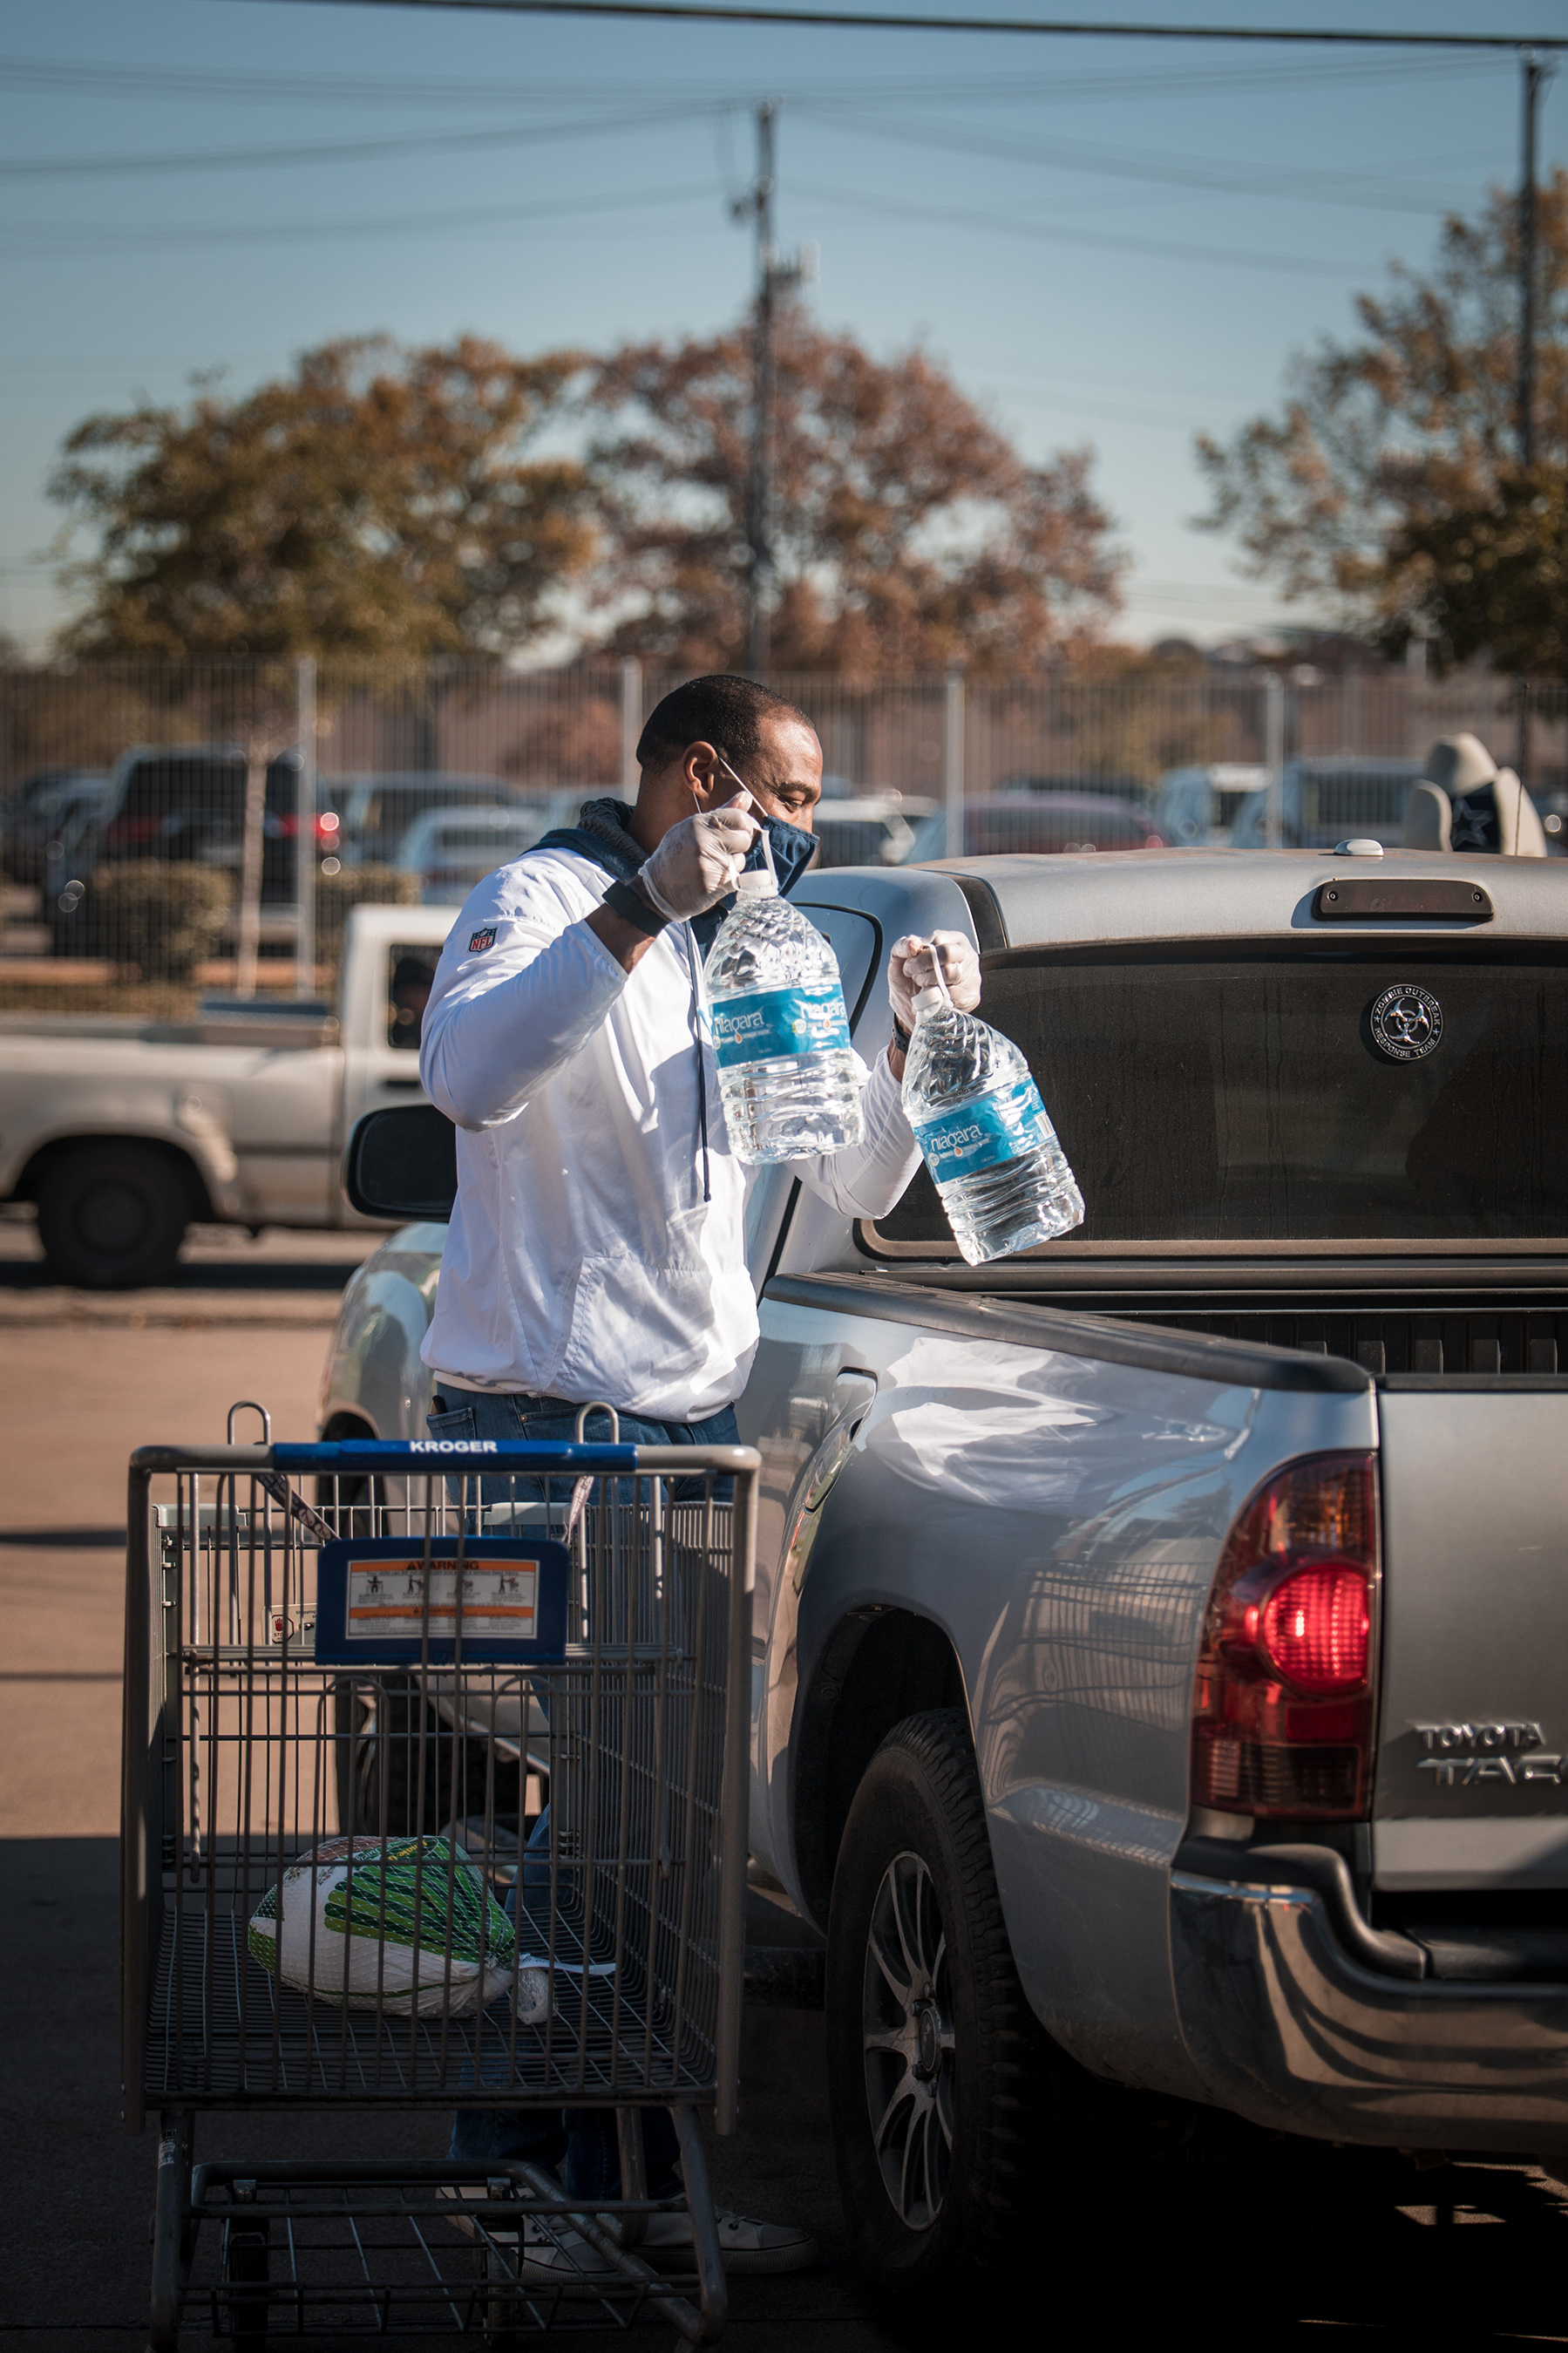 The Salvation Army and the Dallas Cowboys have been partners for 24 years - Darren Woodson served at Carr P. Collins Drive-Through Thanksgiving Meal Distribution on Nov. 17.